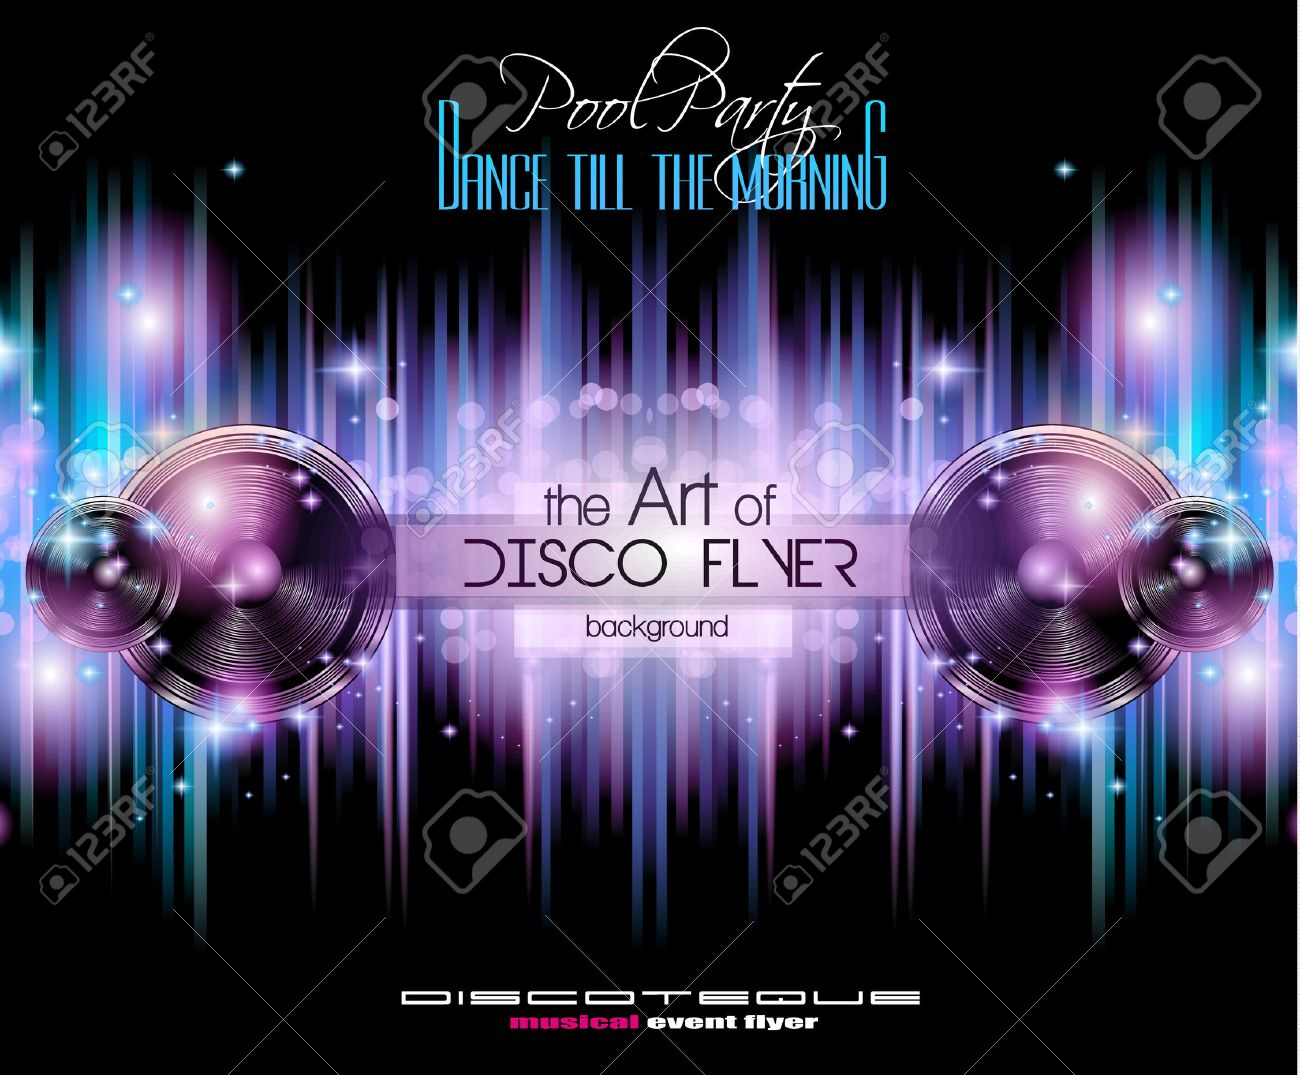 Disco Club Flyer Template For Your Music Nights Event. Ideal For TEchno  Music, Hip  Club Flyer Background